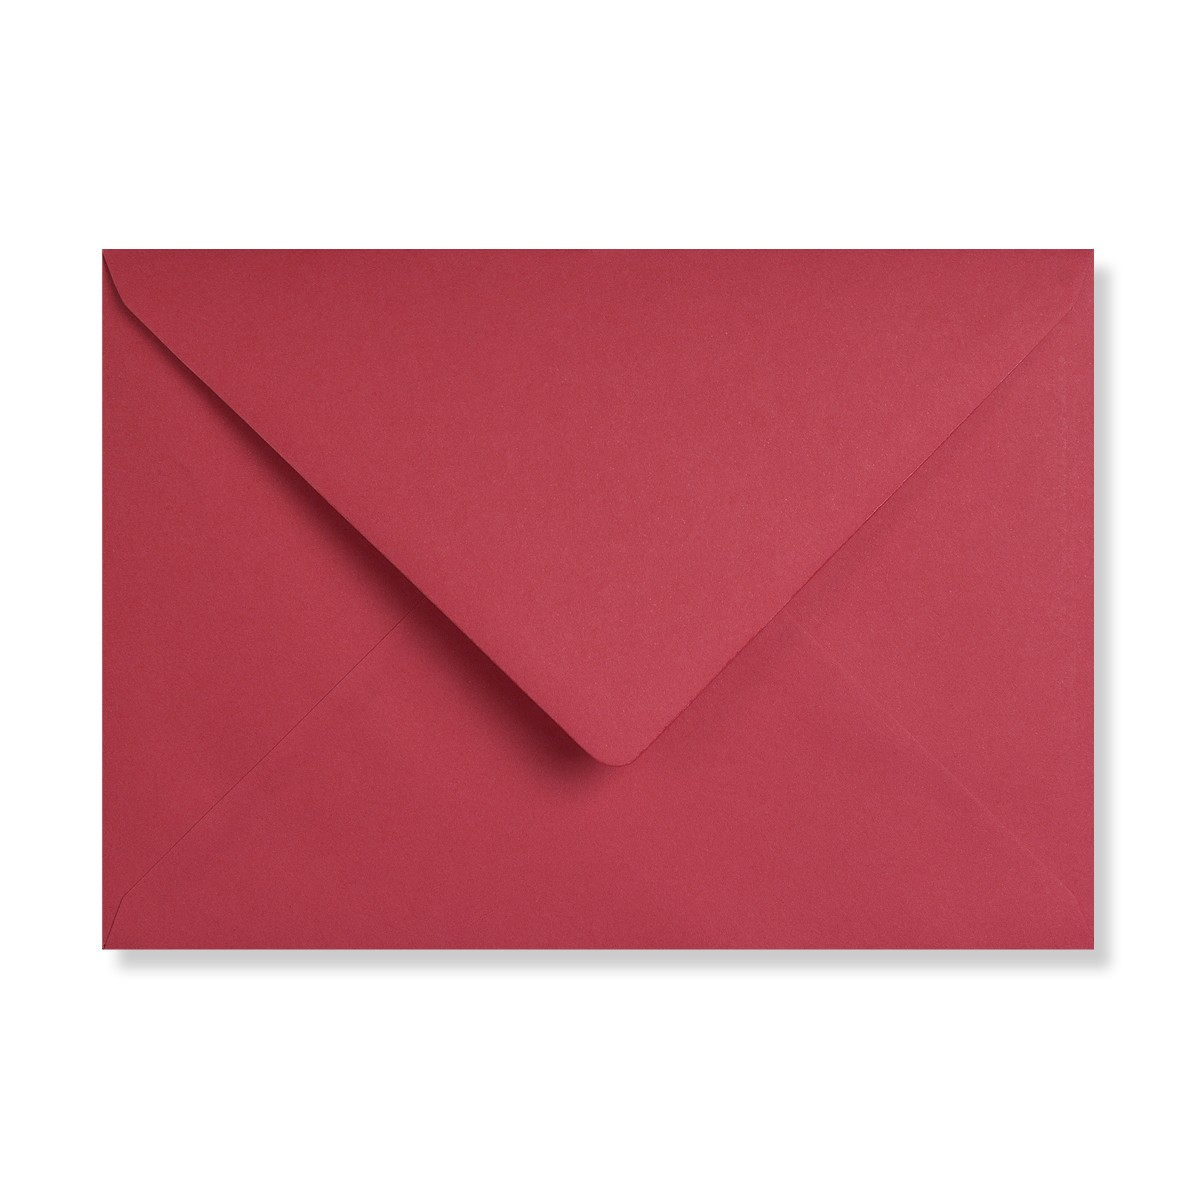 BRIGHT RED 152 x 216mm ENVELOPES 120GSM